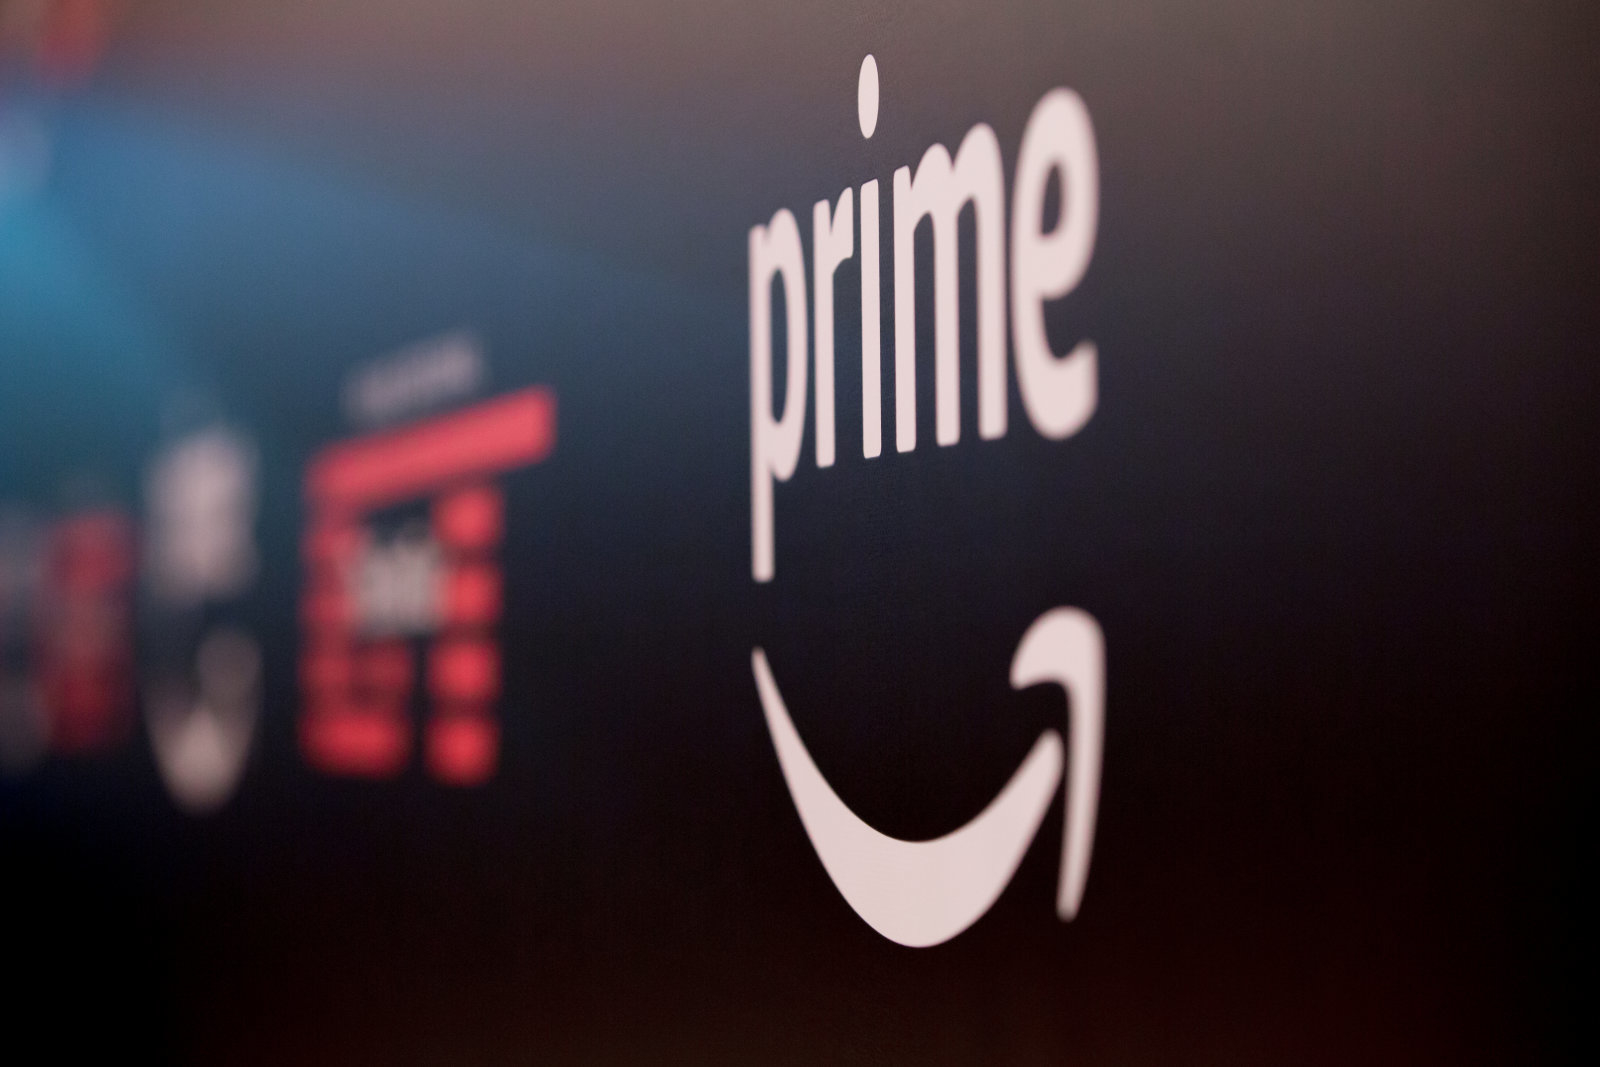 ESSEN, GERMANY - DECEMBER 07: The Amazon Prime Video logo stands at the entrance to the season 2 premiere of 'The Grand Tour' at Grugahalle on December 7, 2017 in Essen, Germany. (Photo by Ant Palmer/Getty Images)